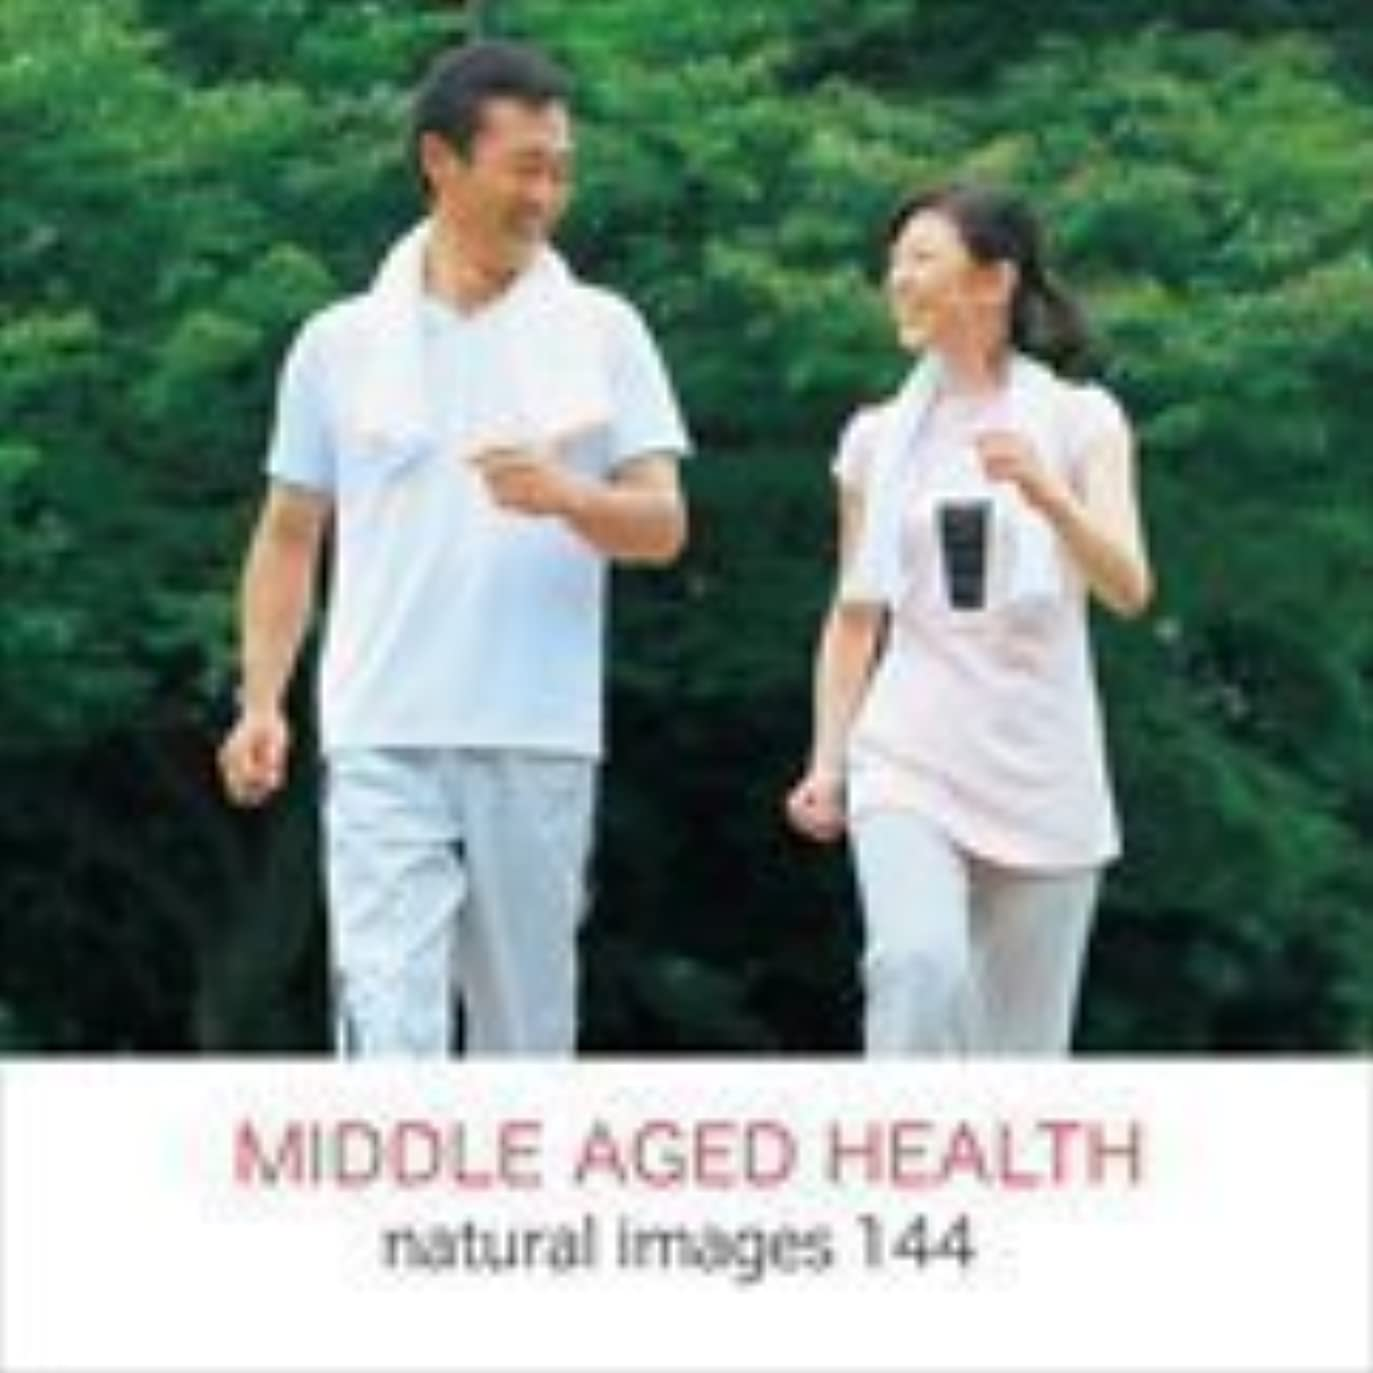 配分解決する乱暴なnaturalimages Vol.144 MIDDLE AGED HEALTH